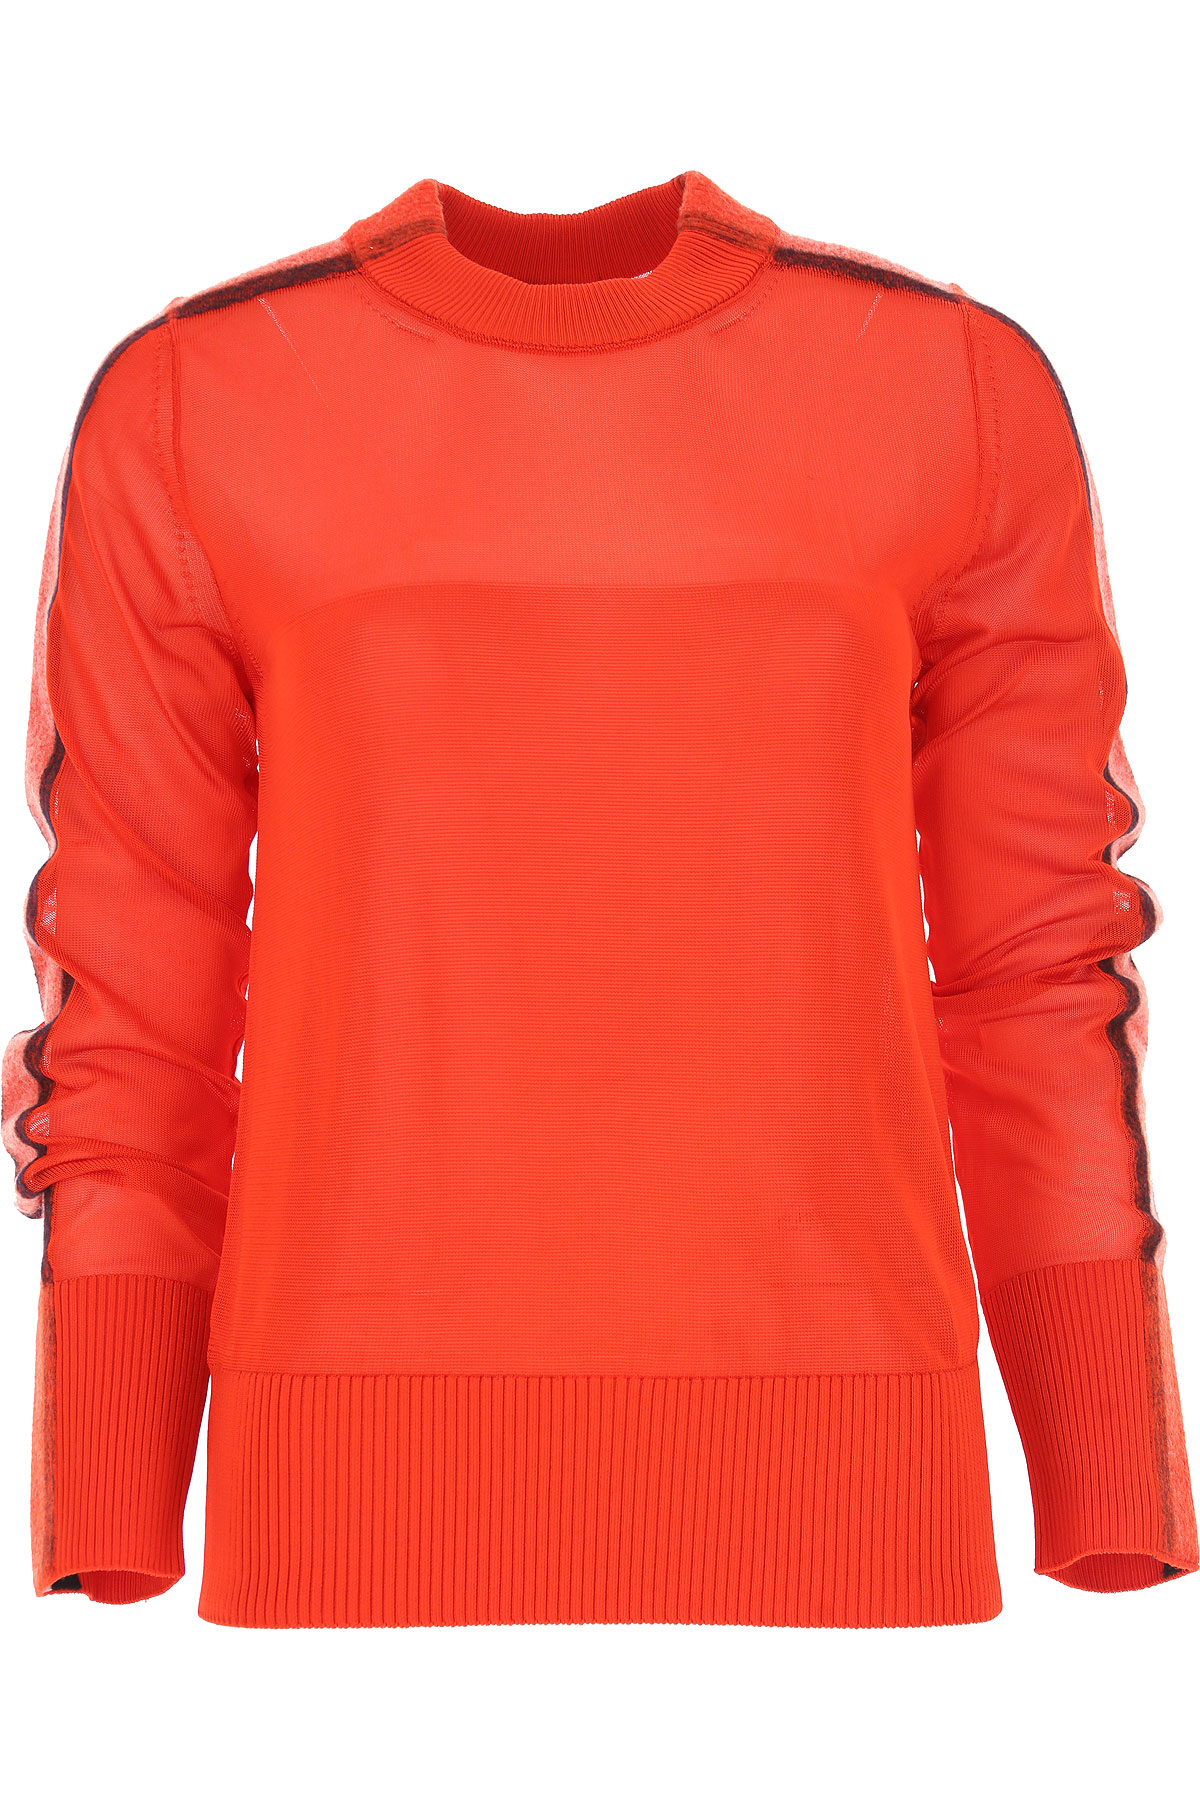 Image of SportMax Sweater for Women Jumper, Red, Viscose, 2017, 10 4 6 8